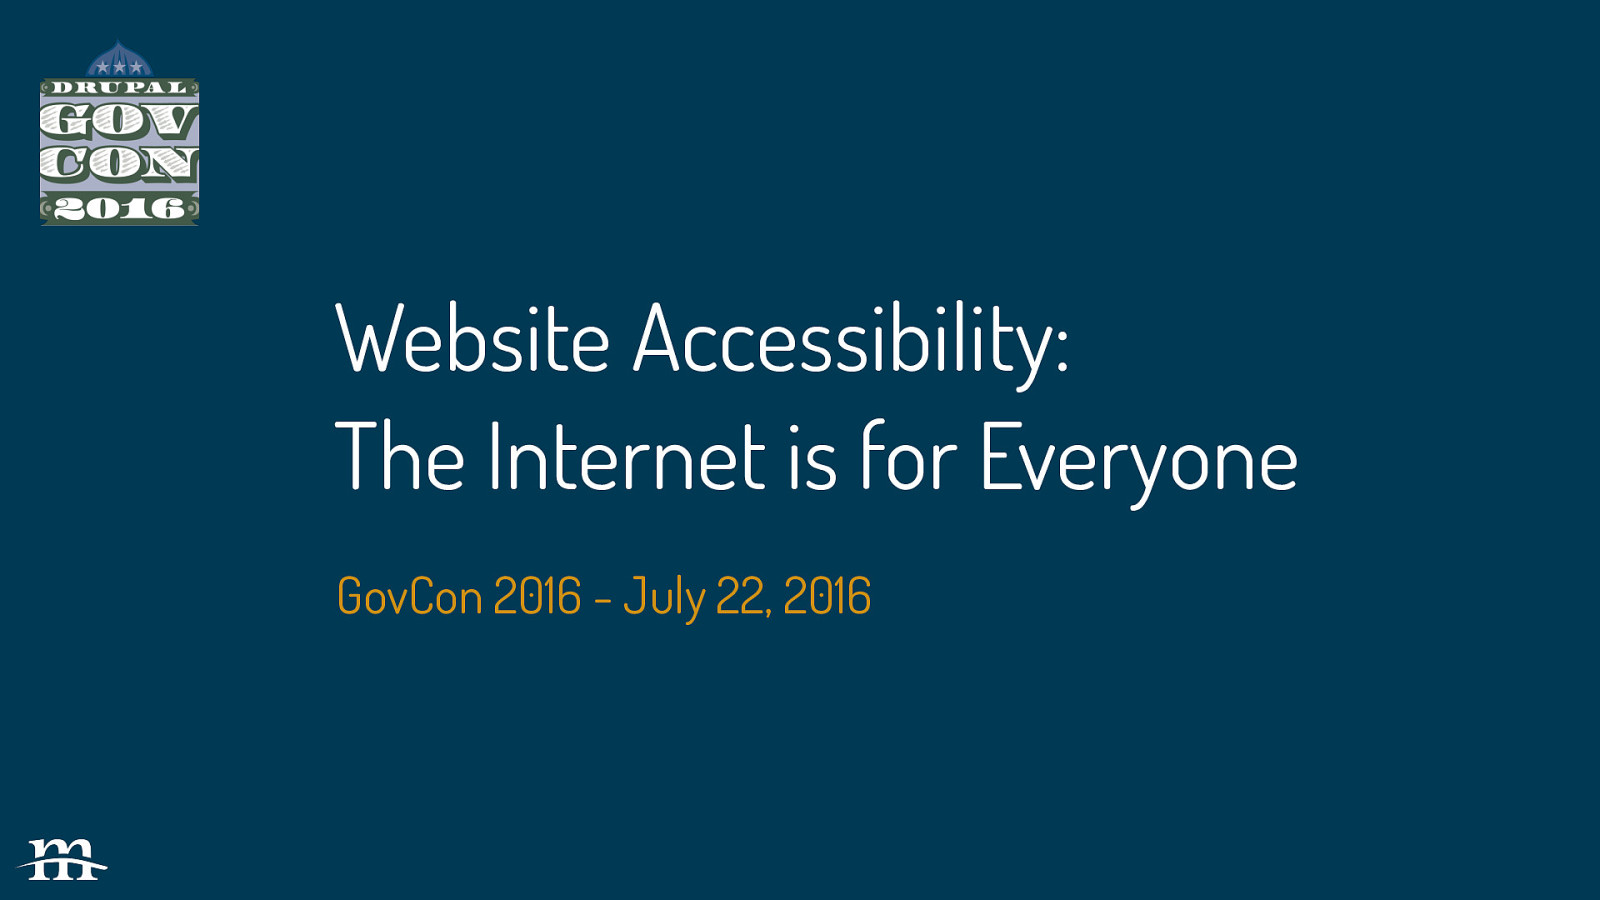 Website Accessibility: The Internet is for Everyone